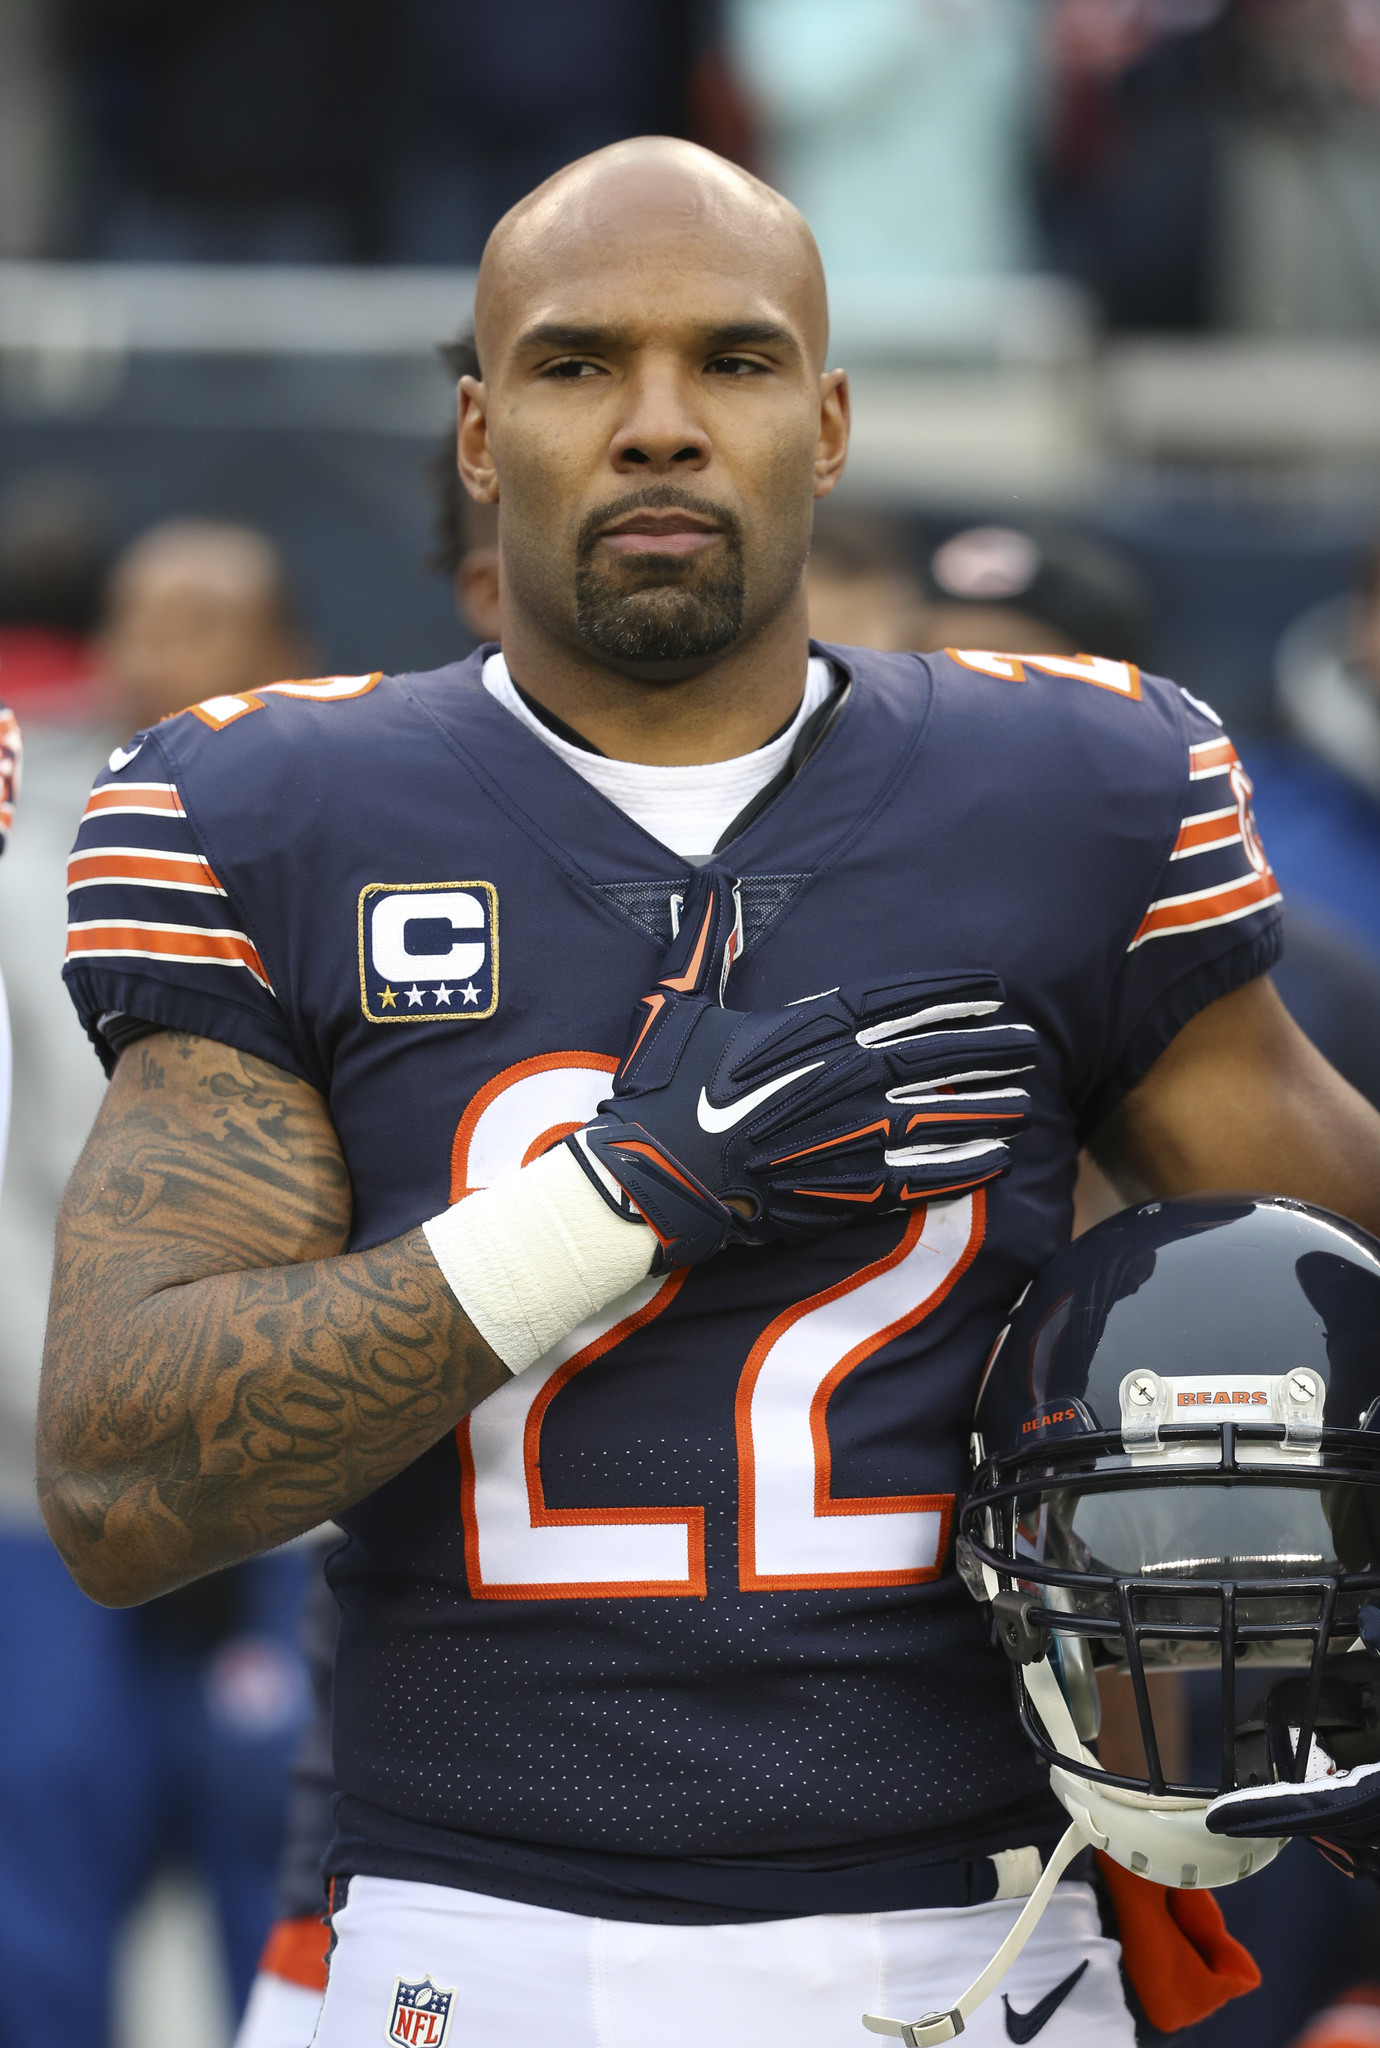 Matt Forte Heading To Jets According To Multiple Reports